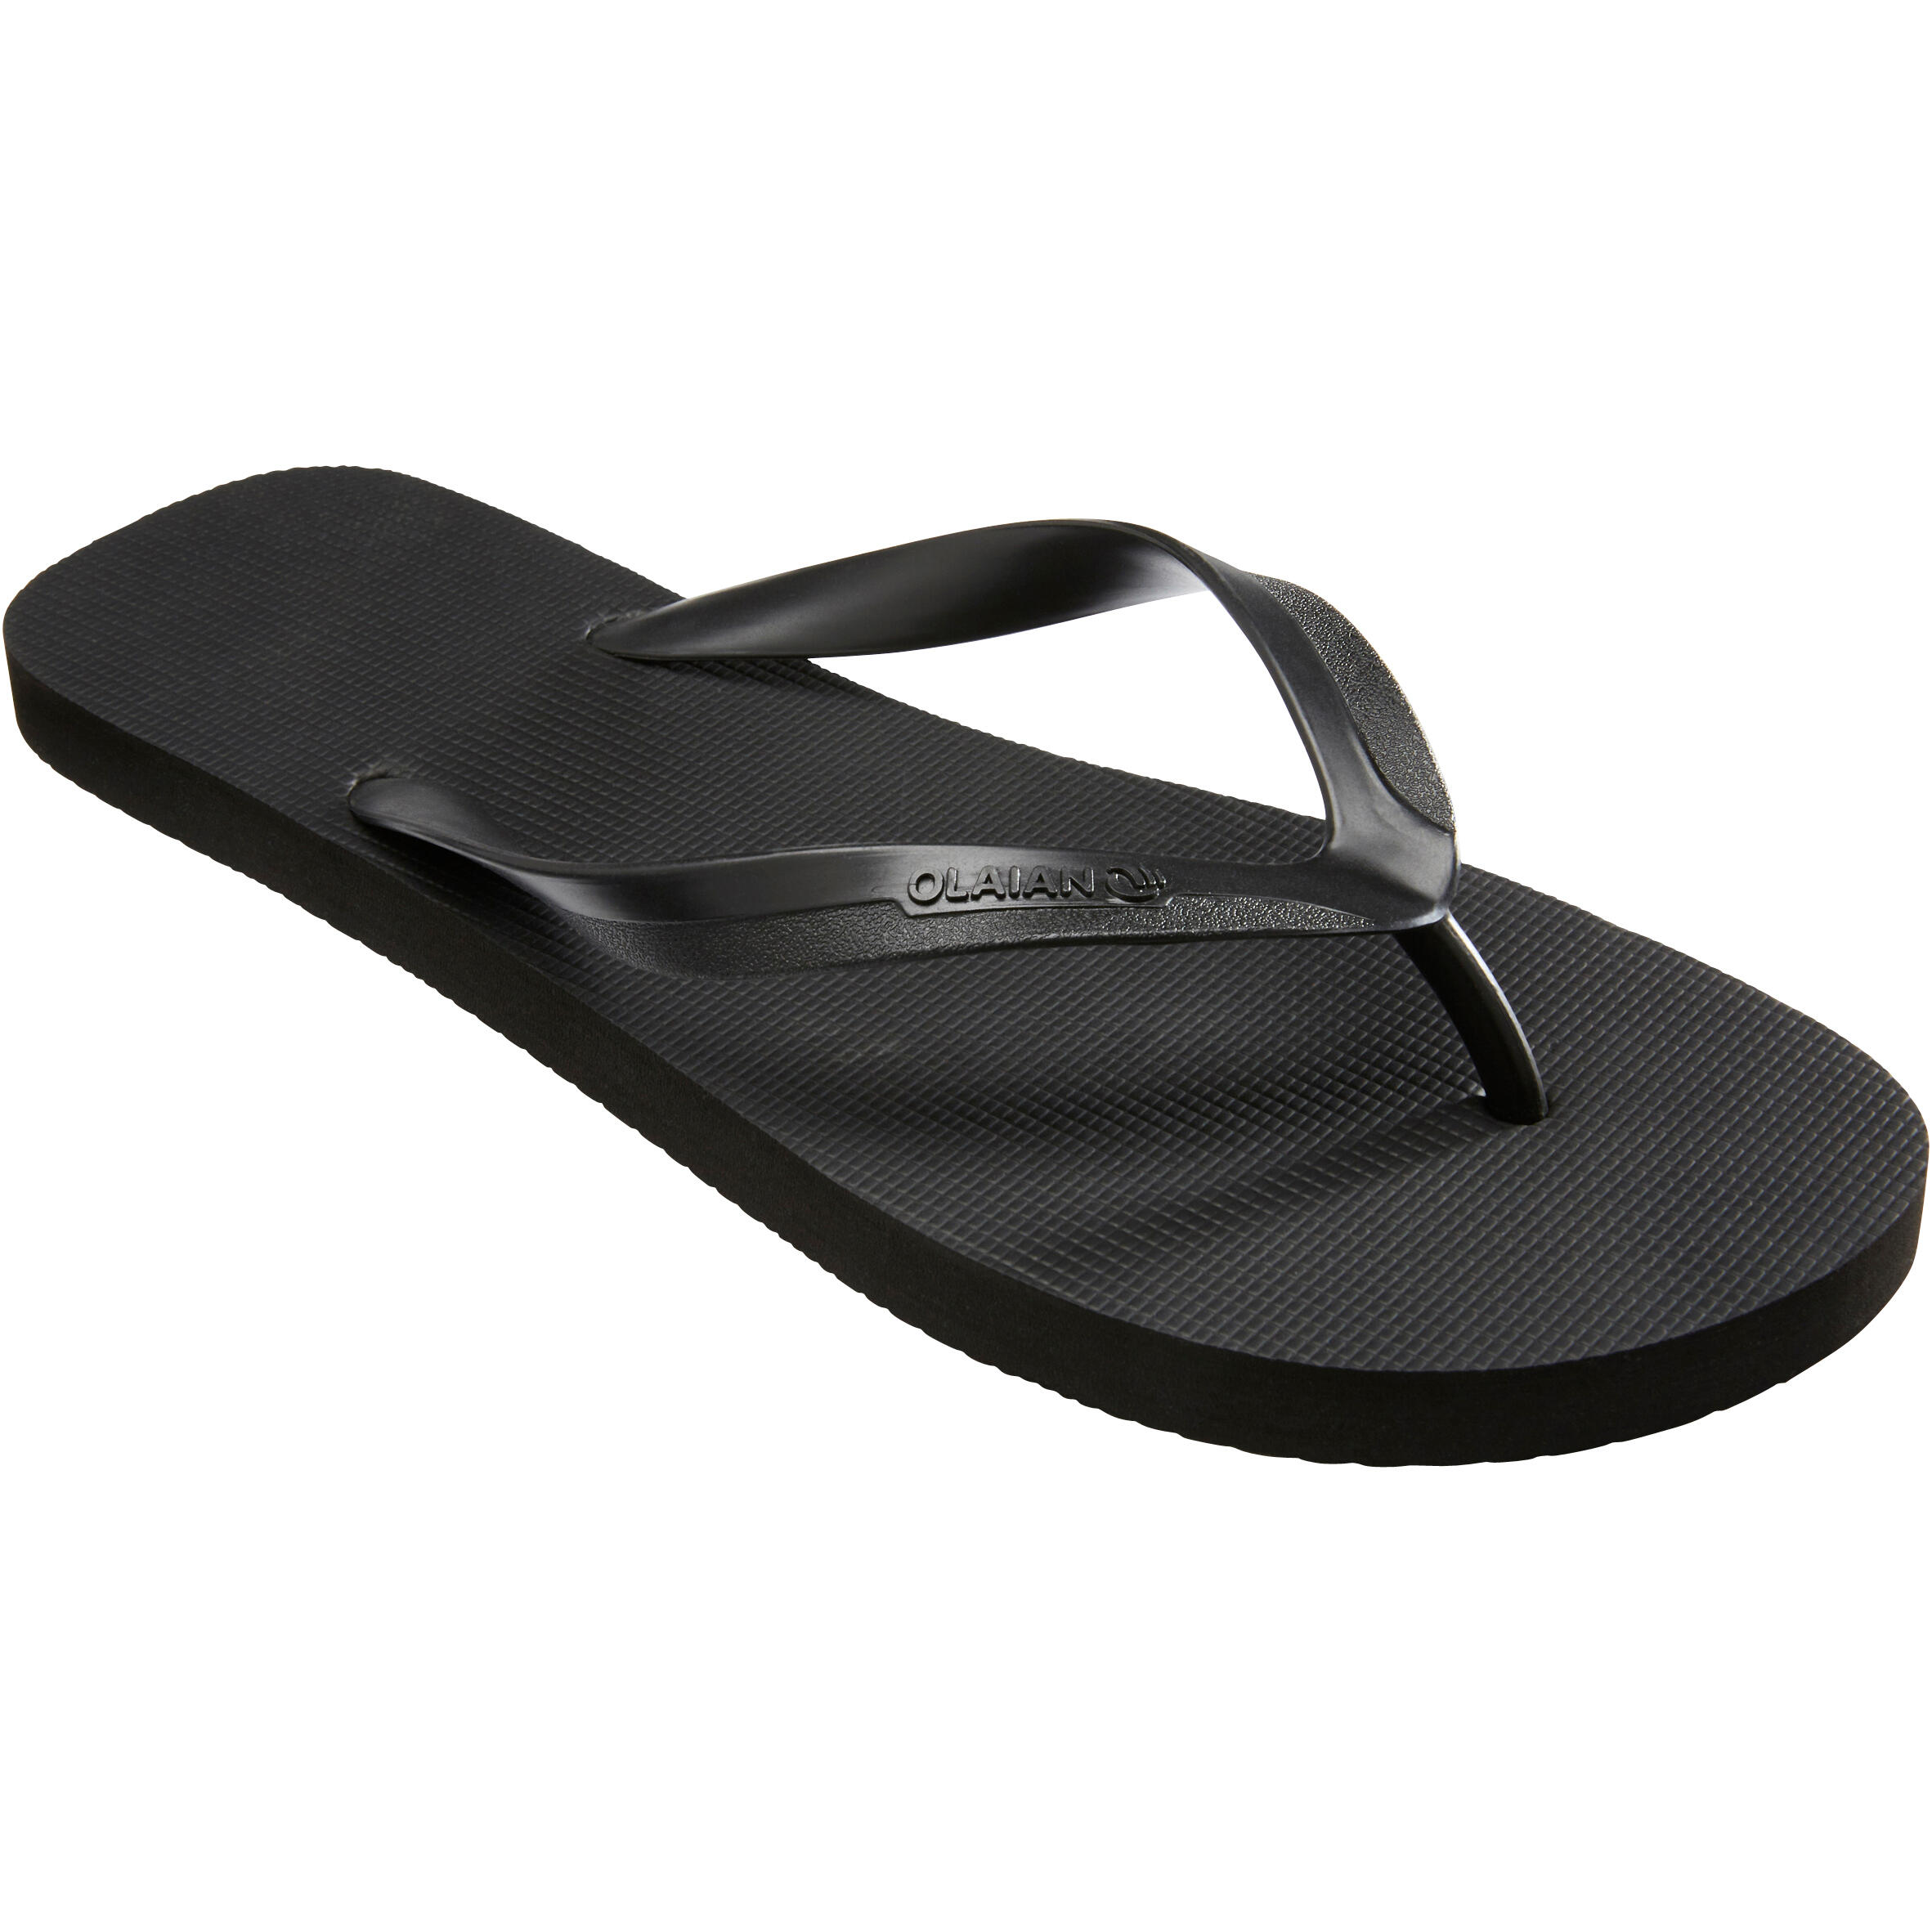 TO 50 M Men's Flip-Flops - Black